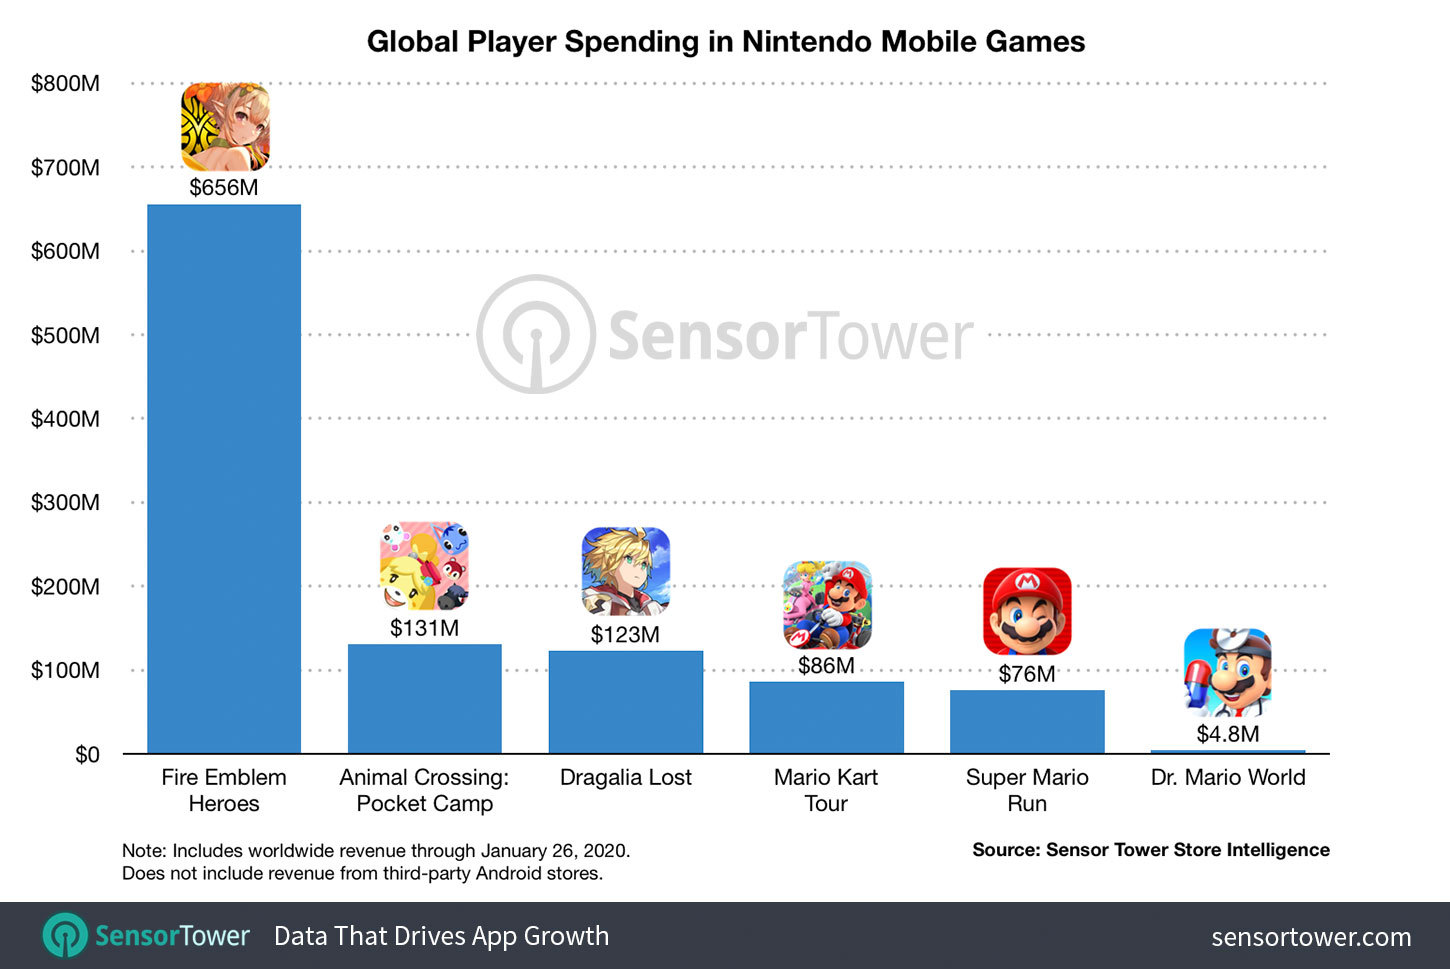 Nintendo passes $1 billion revenue on cell, largely thanks to Fire Emblem